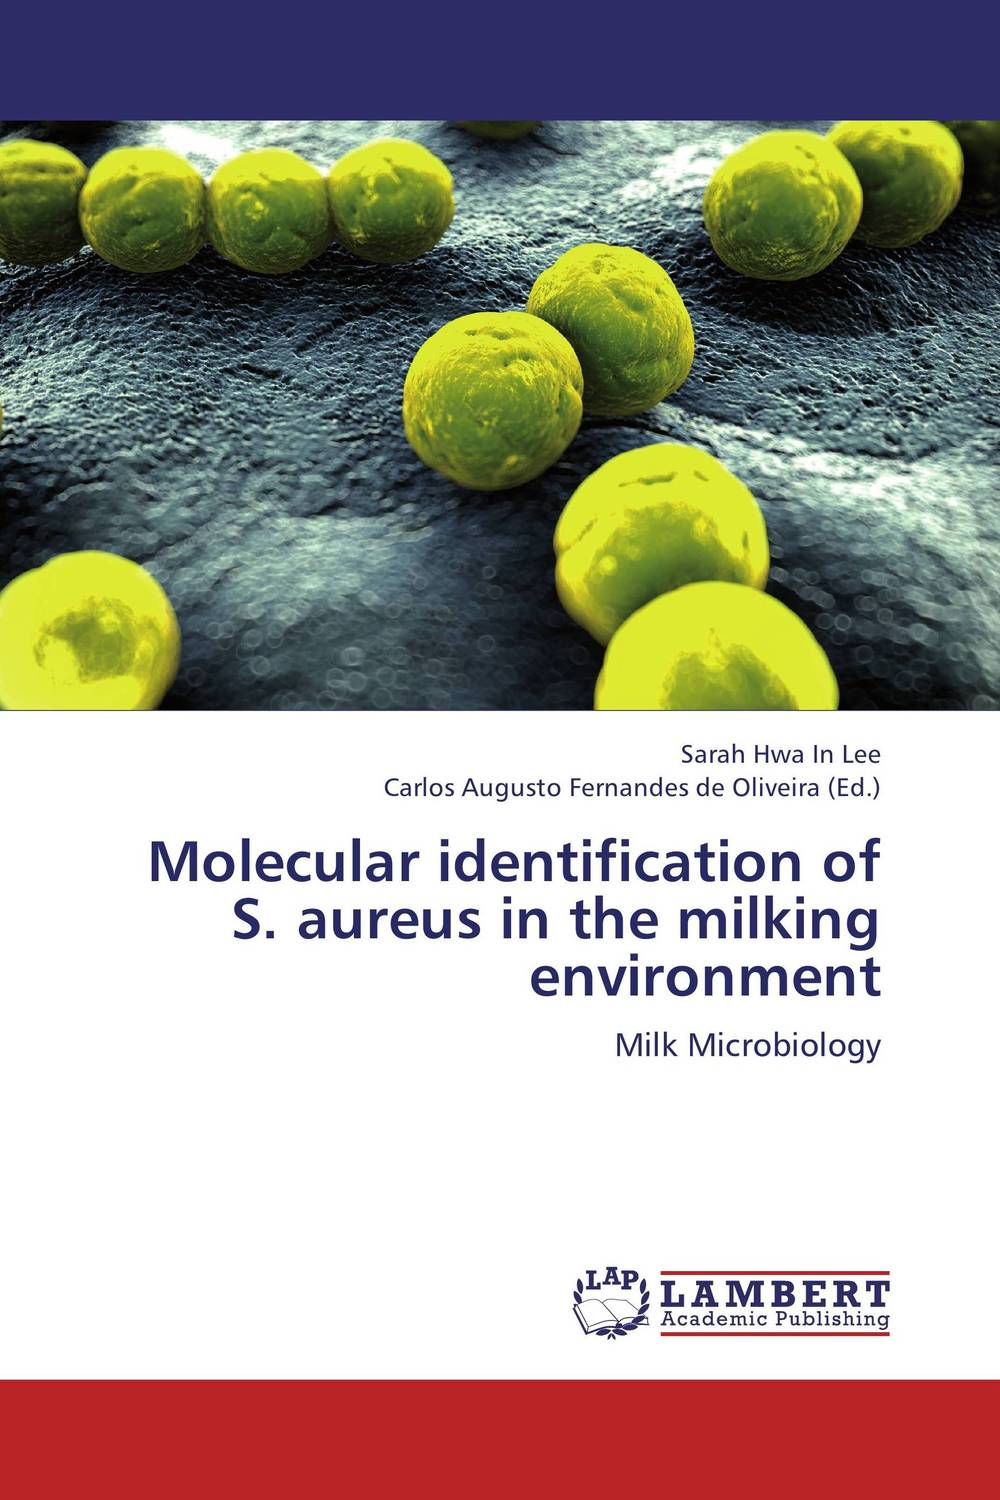 Molecular identification of S. aureus in the milking environment abhijeet singh seema ahuja and devendra jain screening molecular identification enzyme production of thermophiles